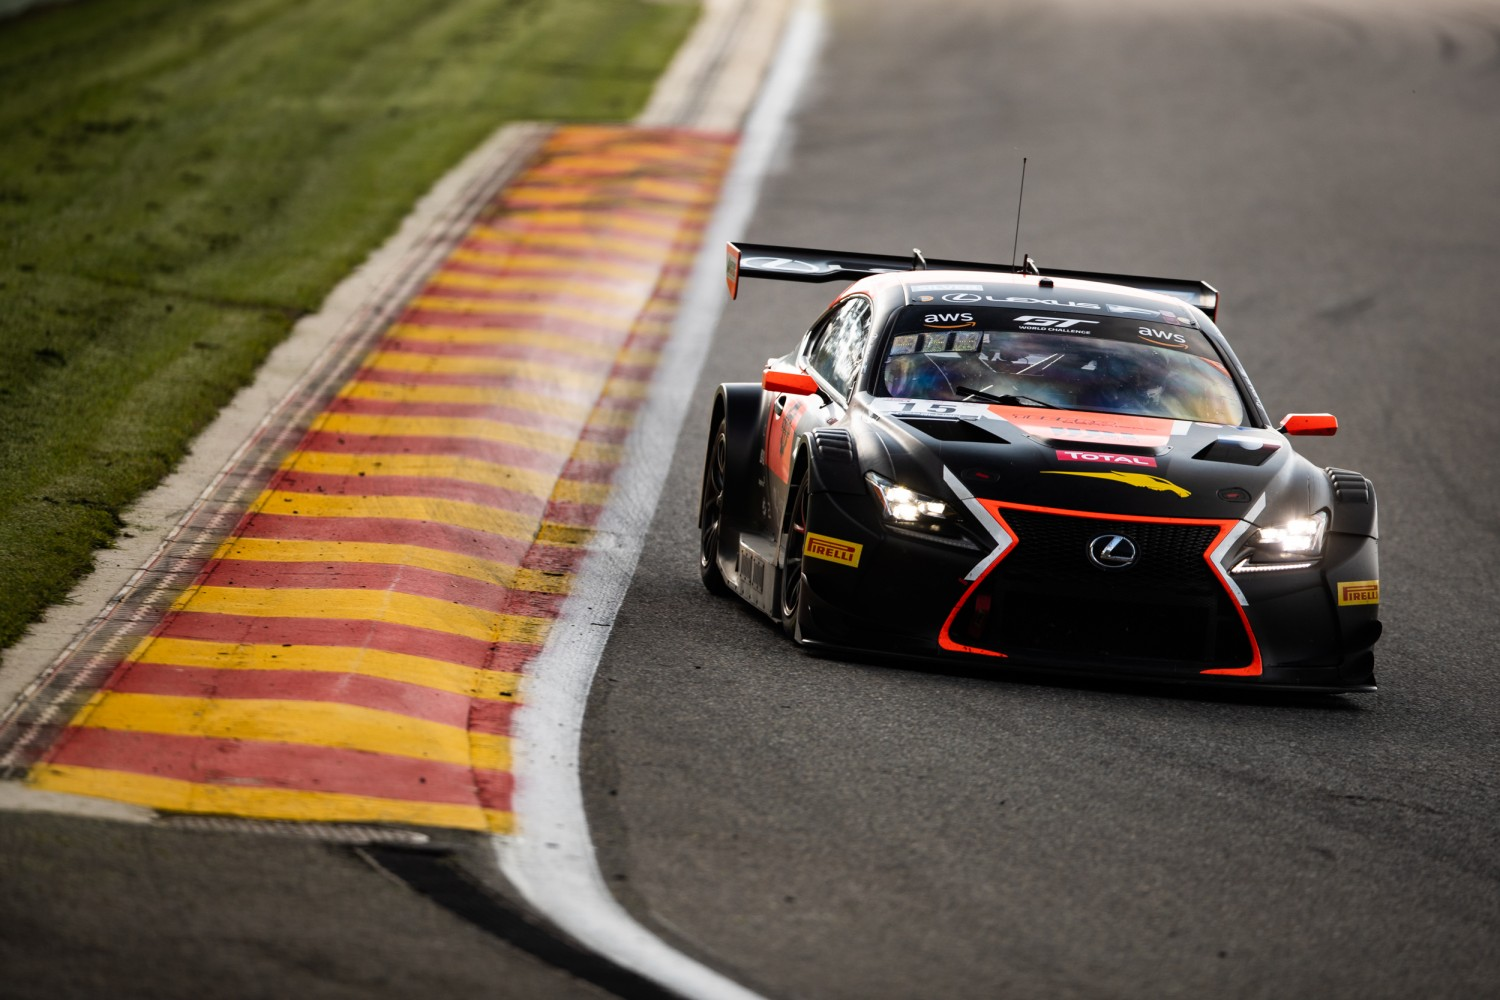 Tech1 Racing Lexus tops afternoon test session at Spa